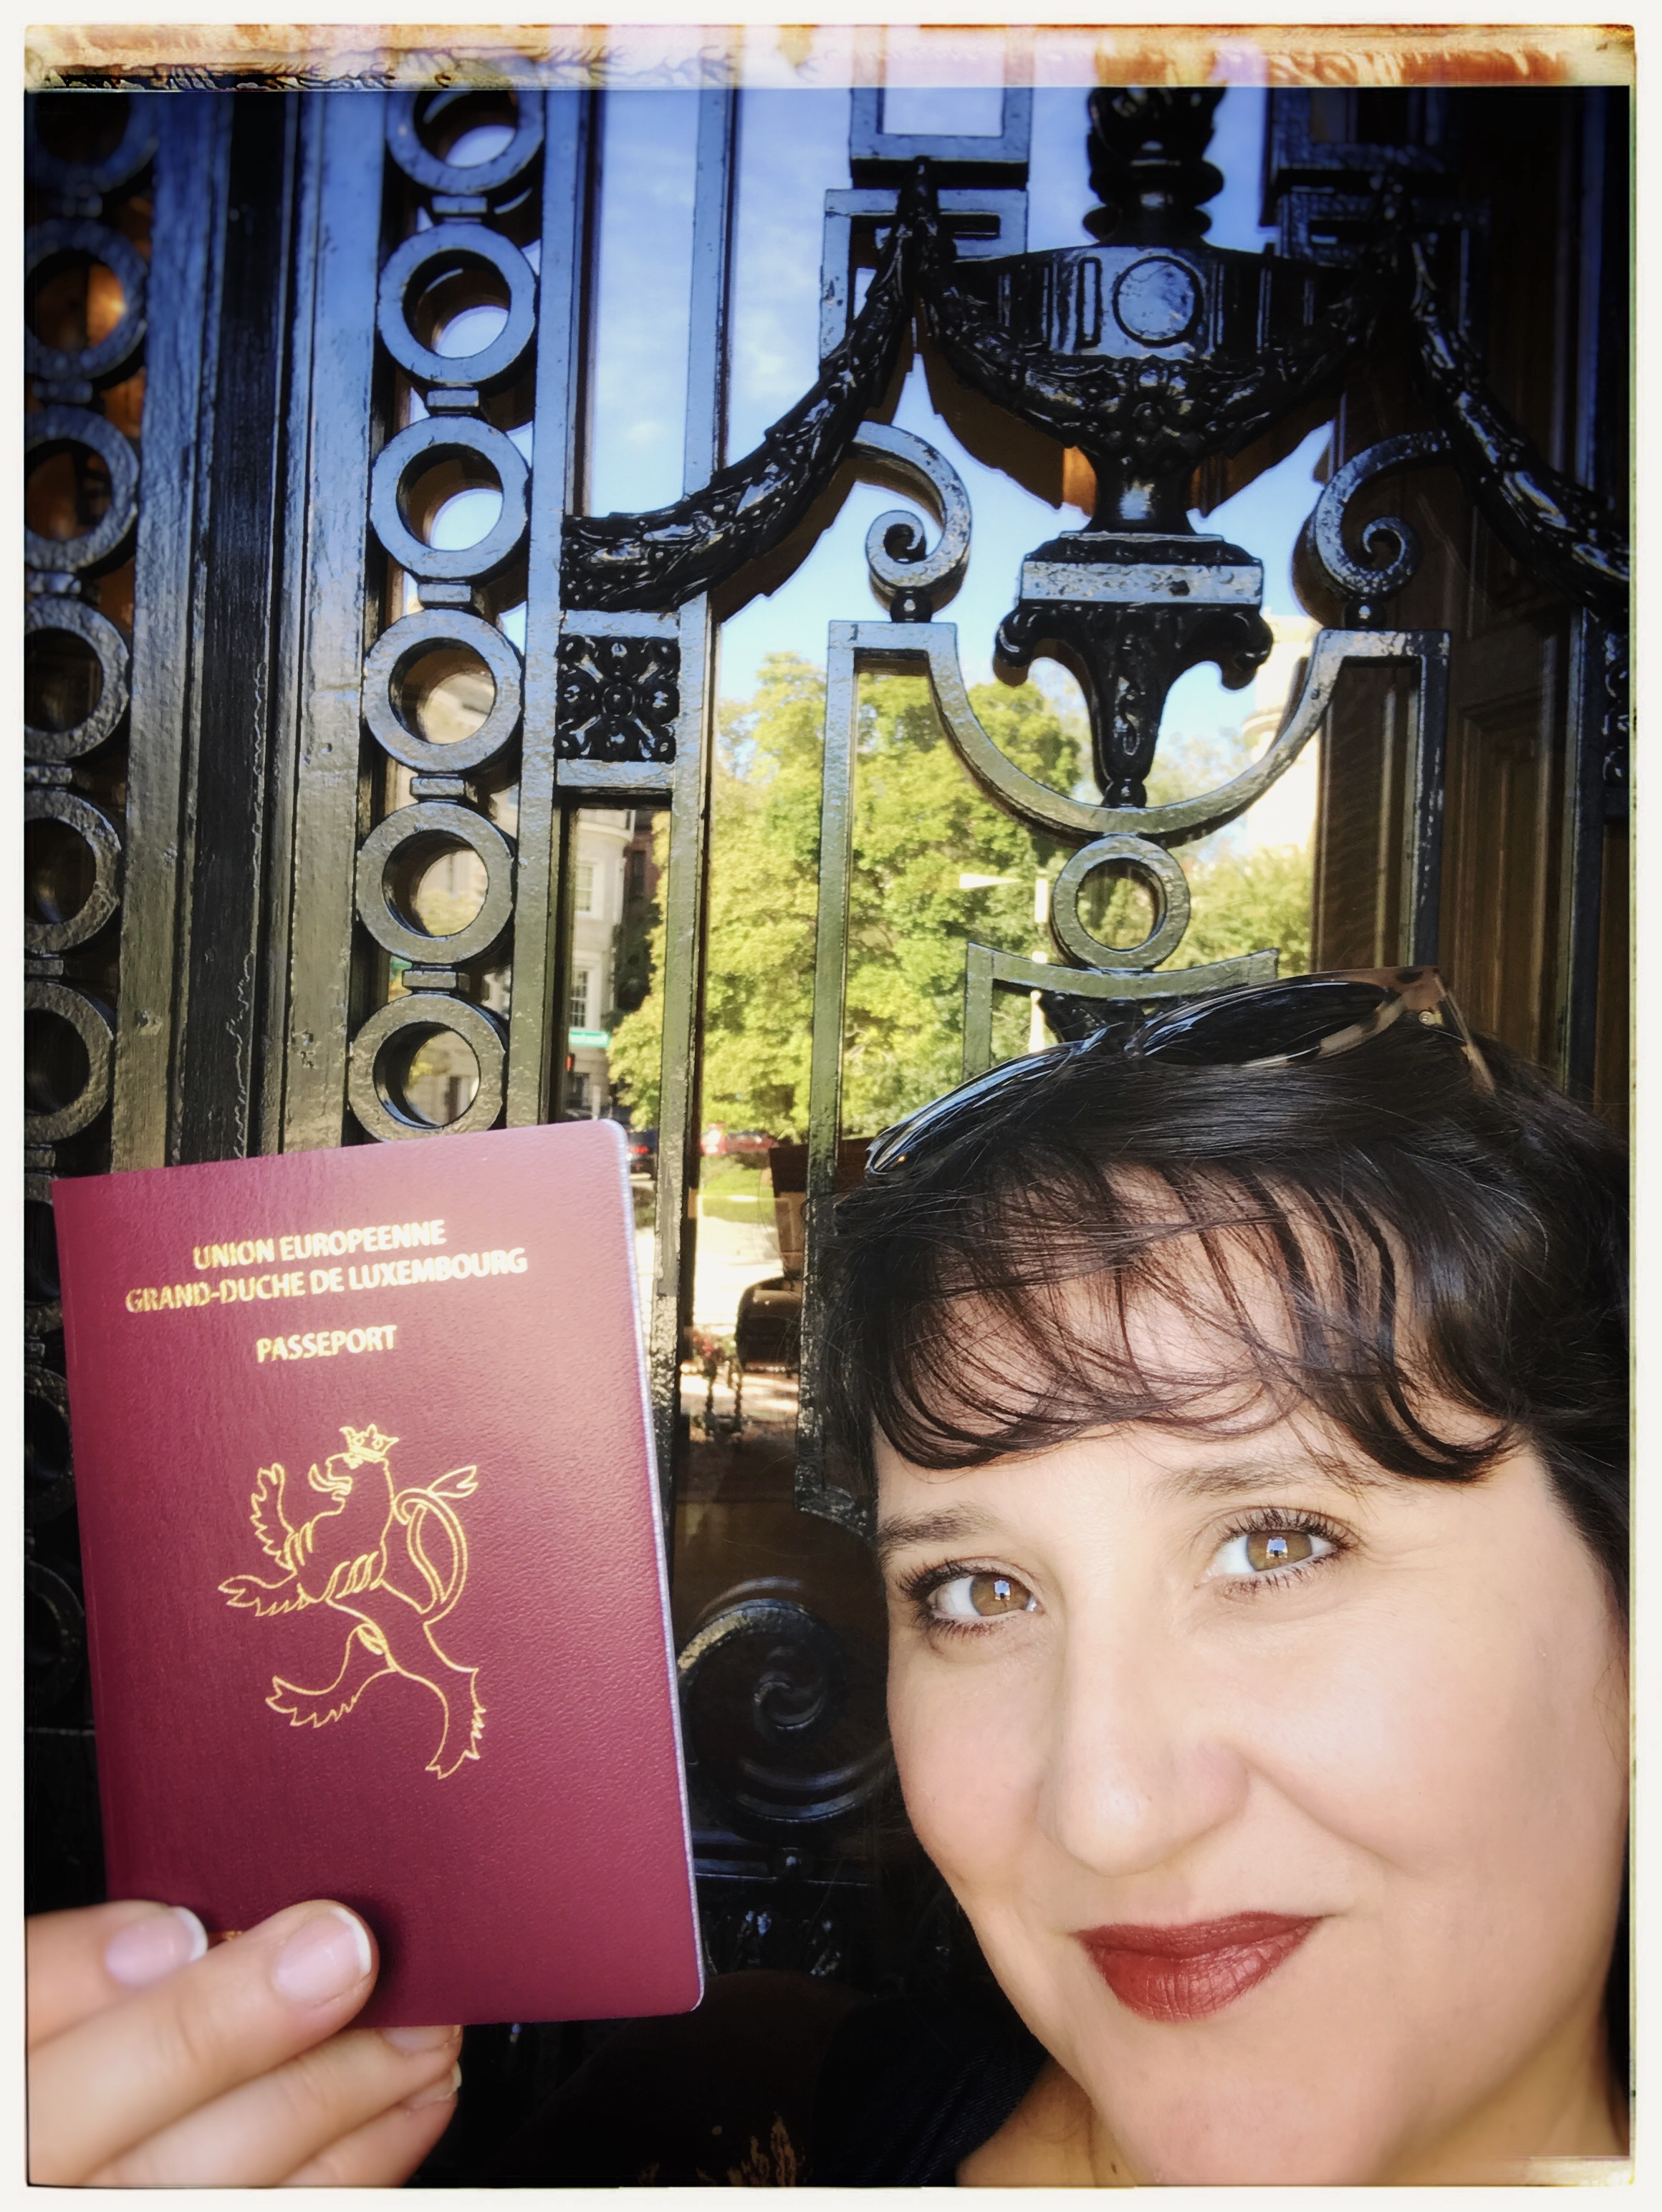 - If you need assistance with Phase One or Phase Two of reclaiming your Luxembourgish citizenship, or research on your family history, I am available on a consulting basis.abbie [dot] reese @ gmail [dot] com